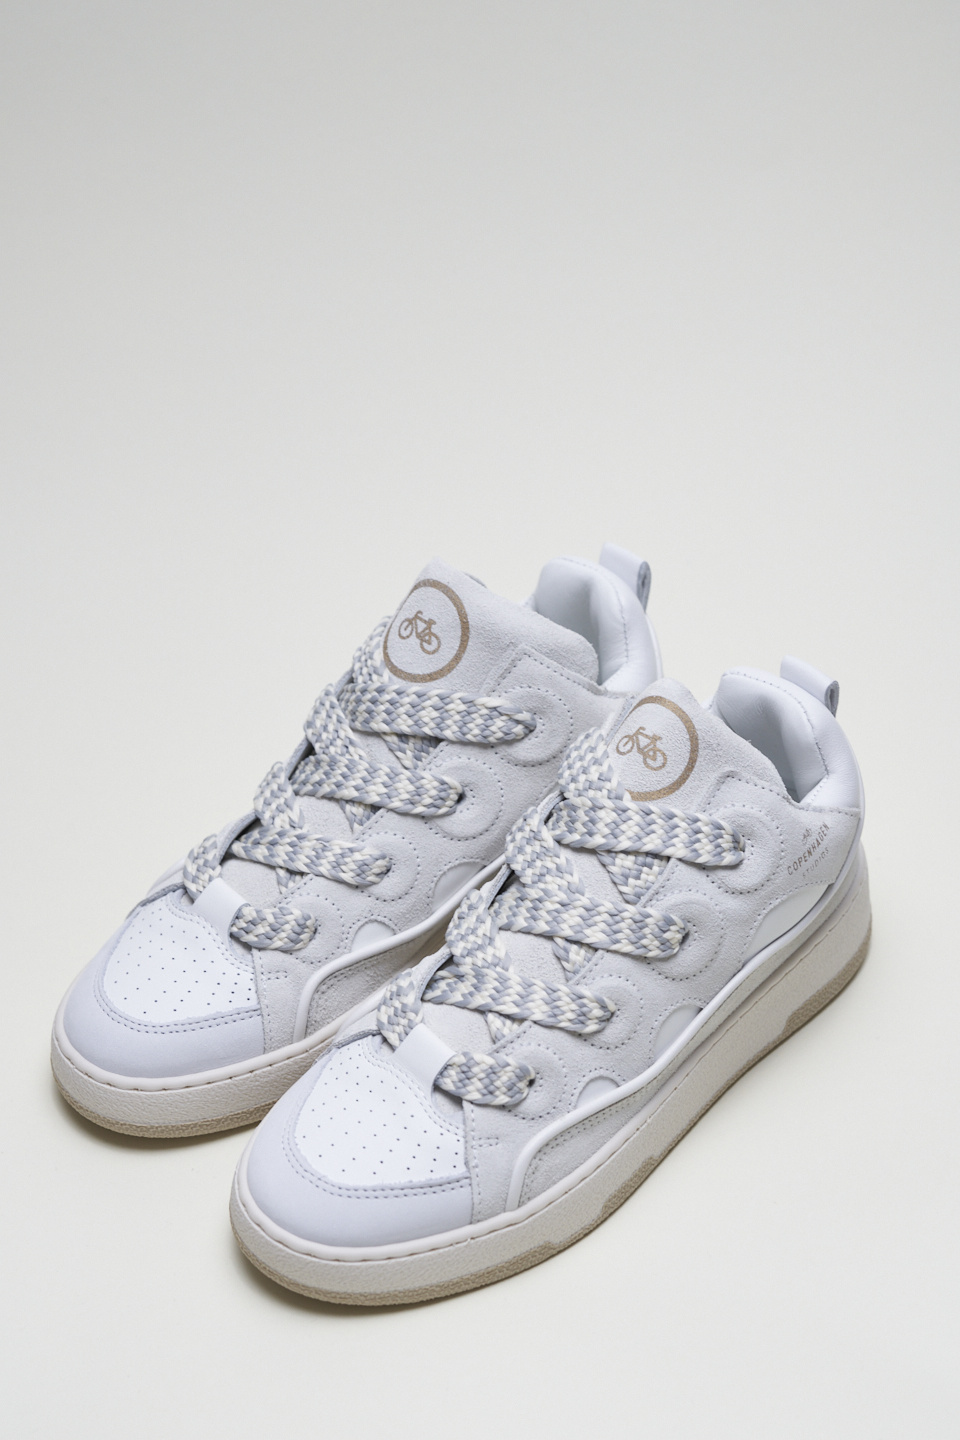 CPH201 Leather mix white-1